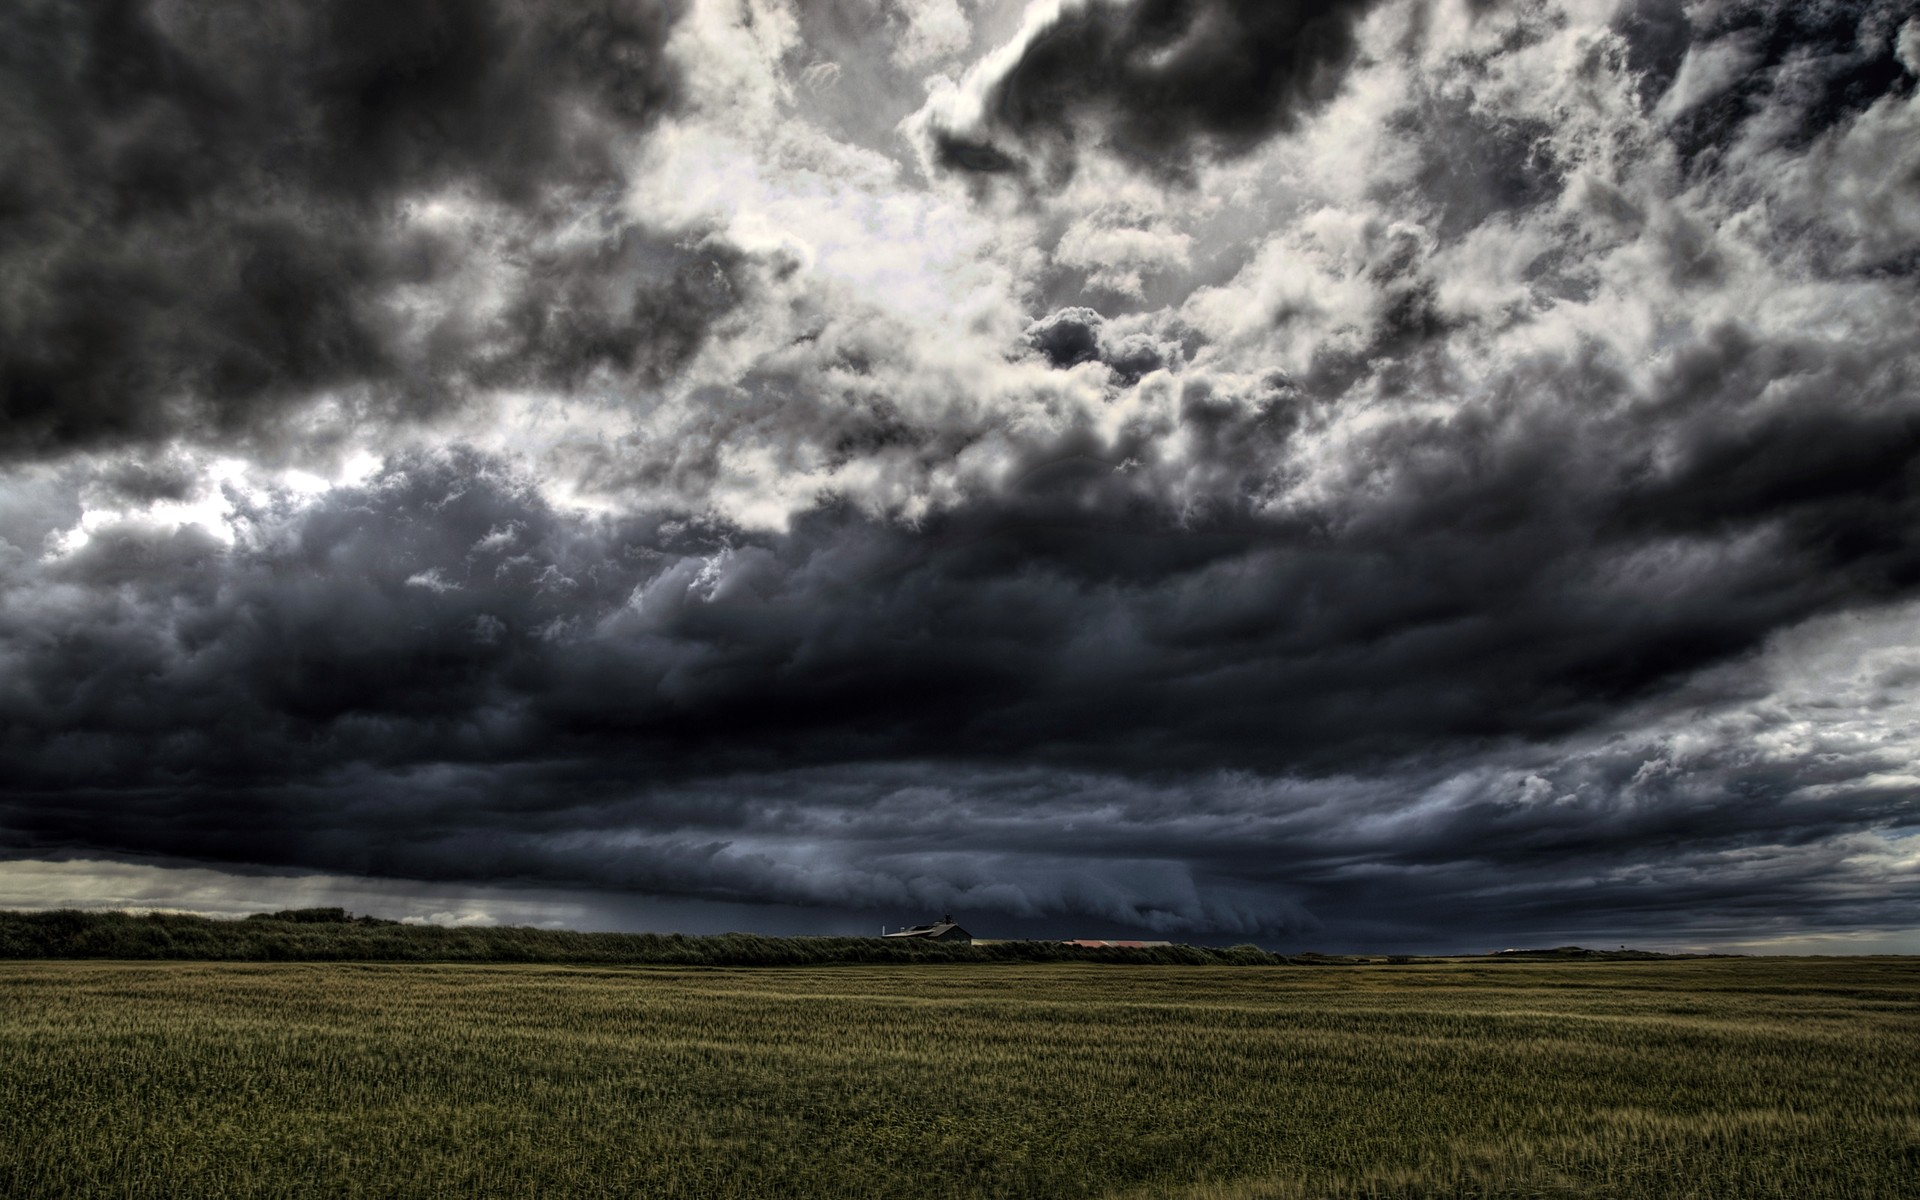 Collection of Dark Clouds Wallpaper on HDWallpapers